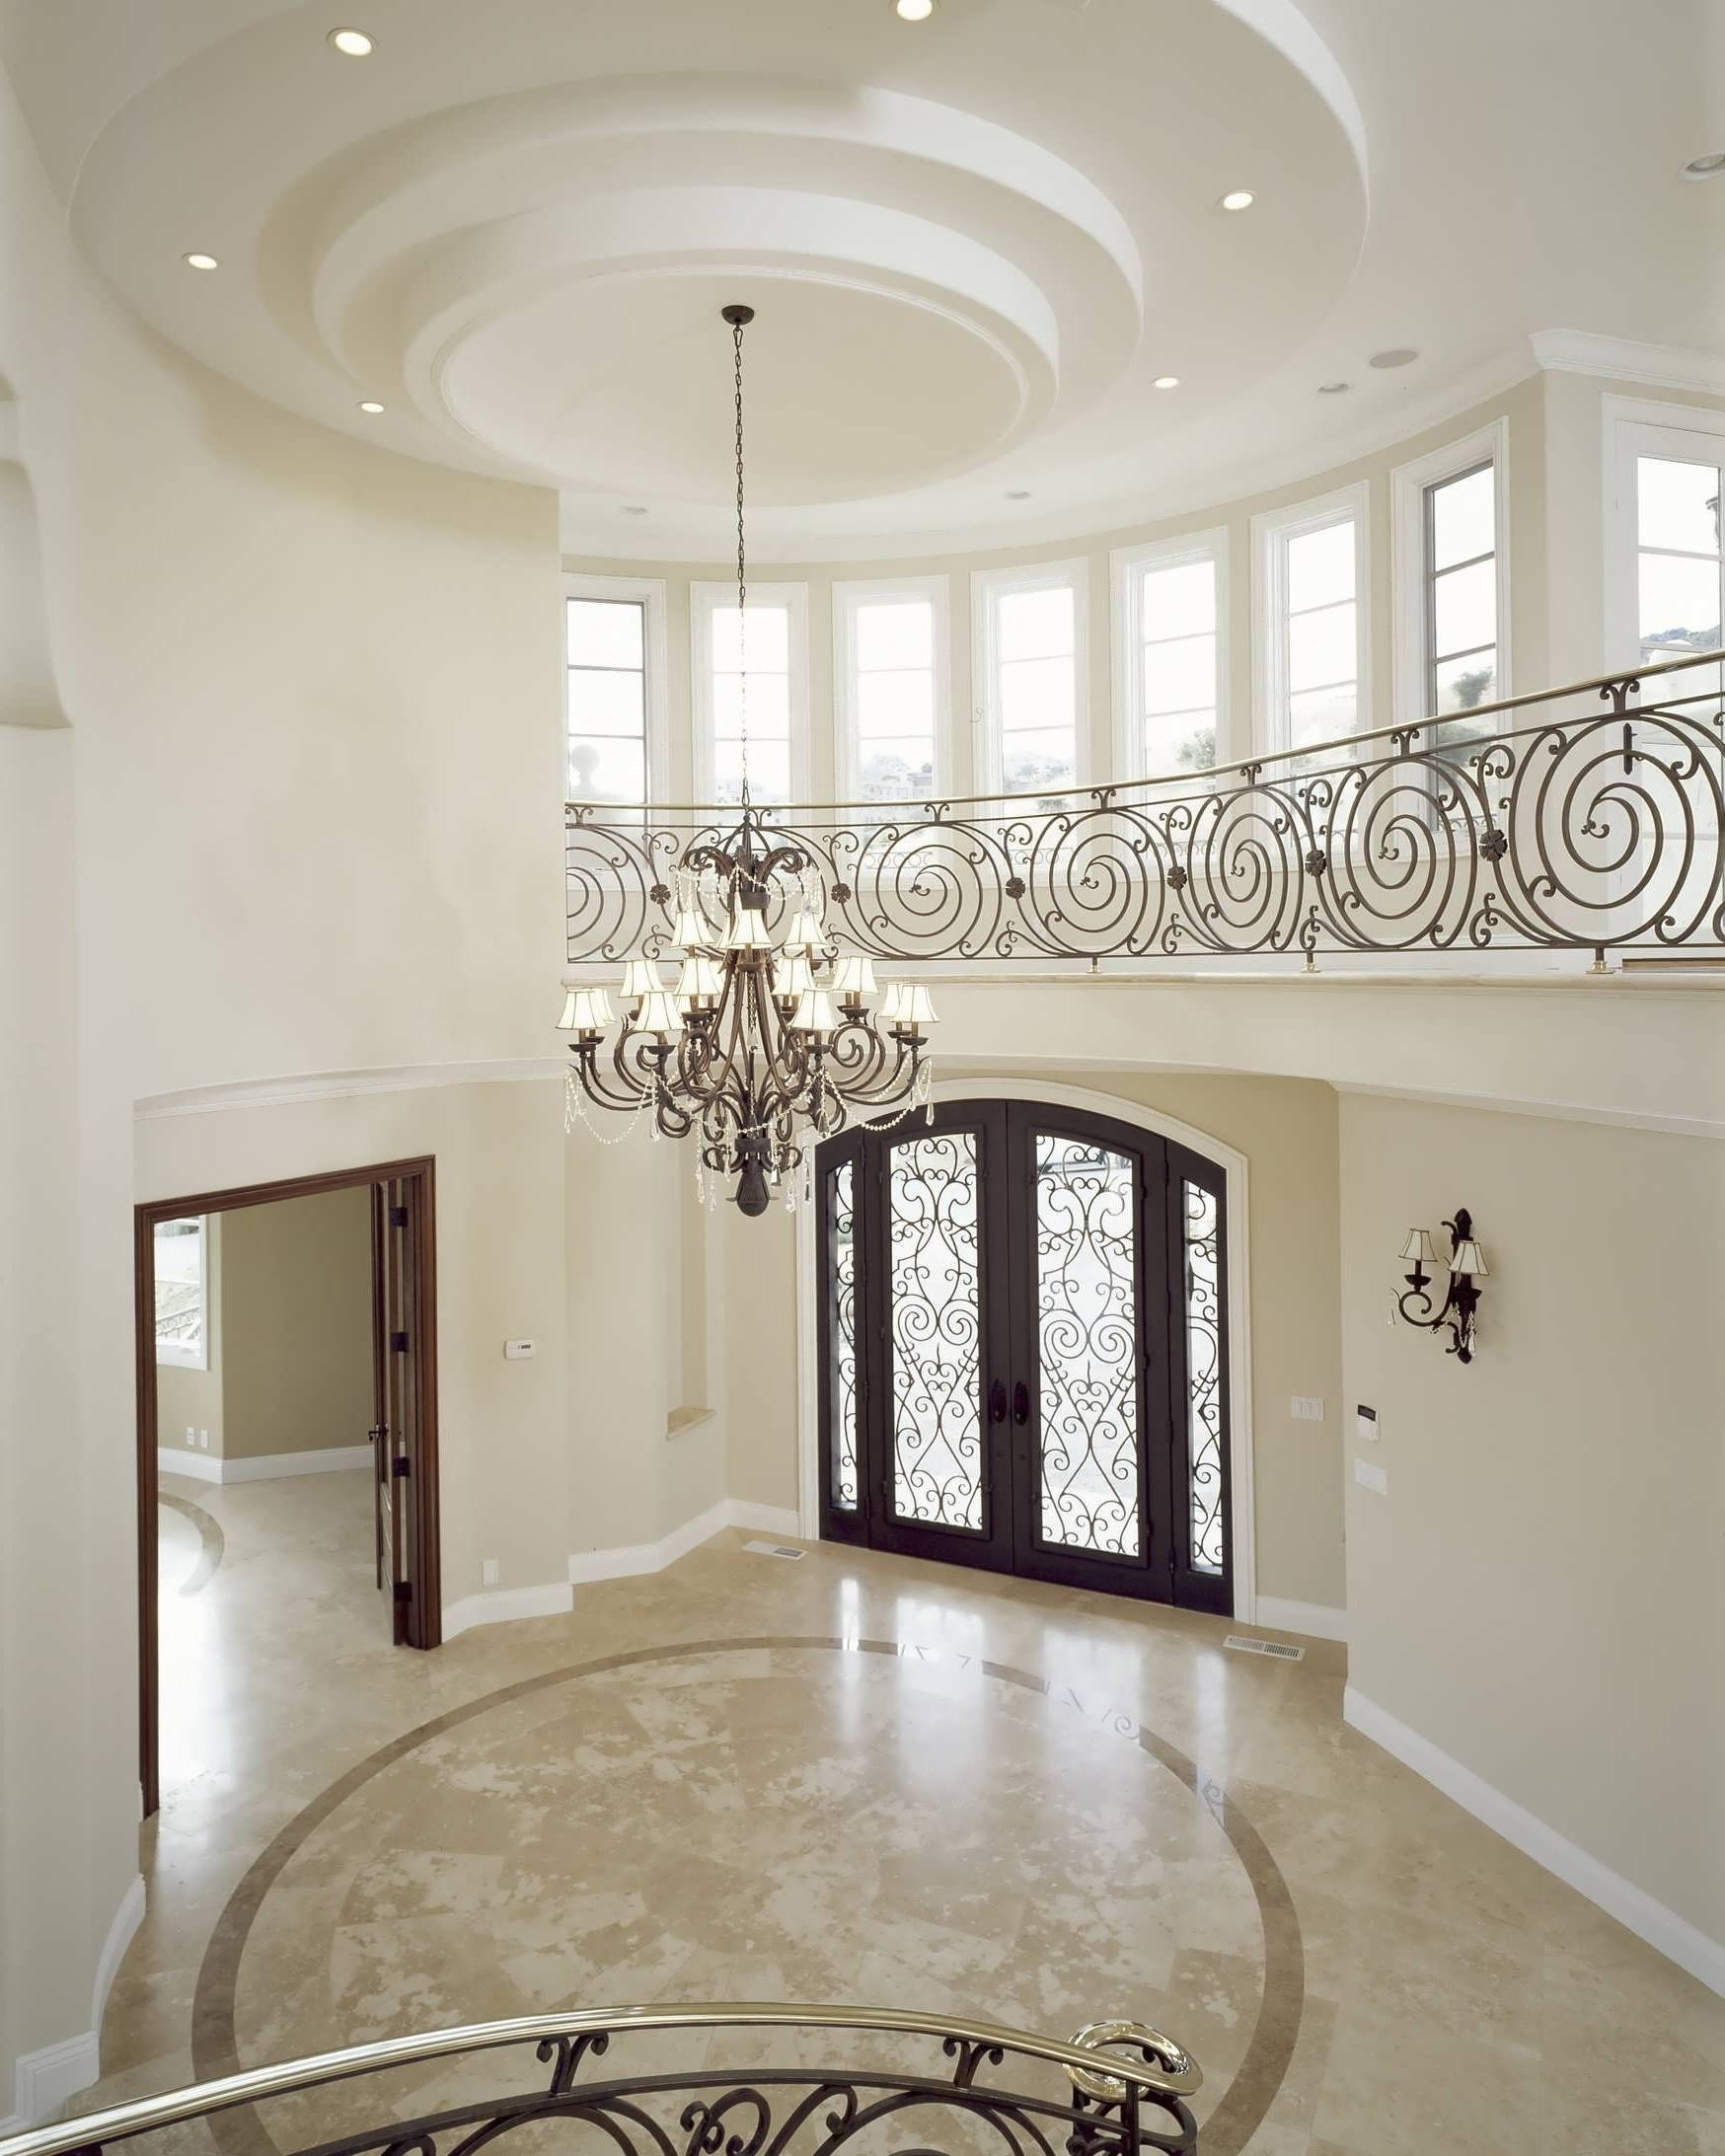 Hallway Chandeliers Regarding Most Up To Date Light : Ceiling Lights Sputnik Chandelier White Mini For Foyer (View 8 of 20)